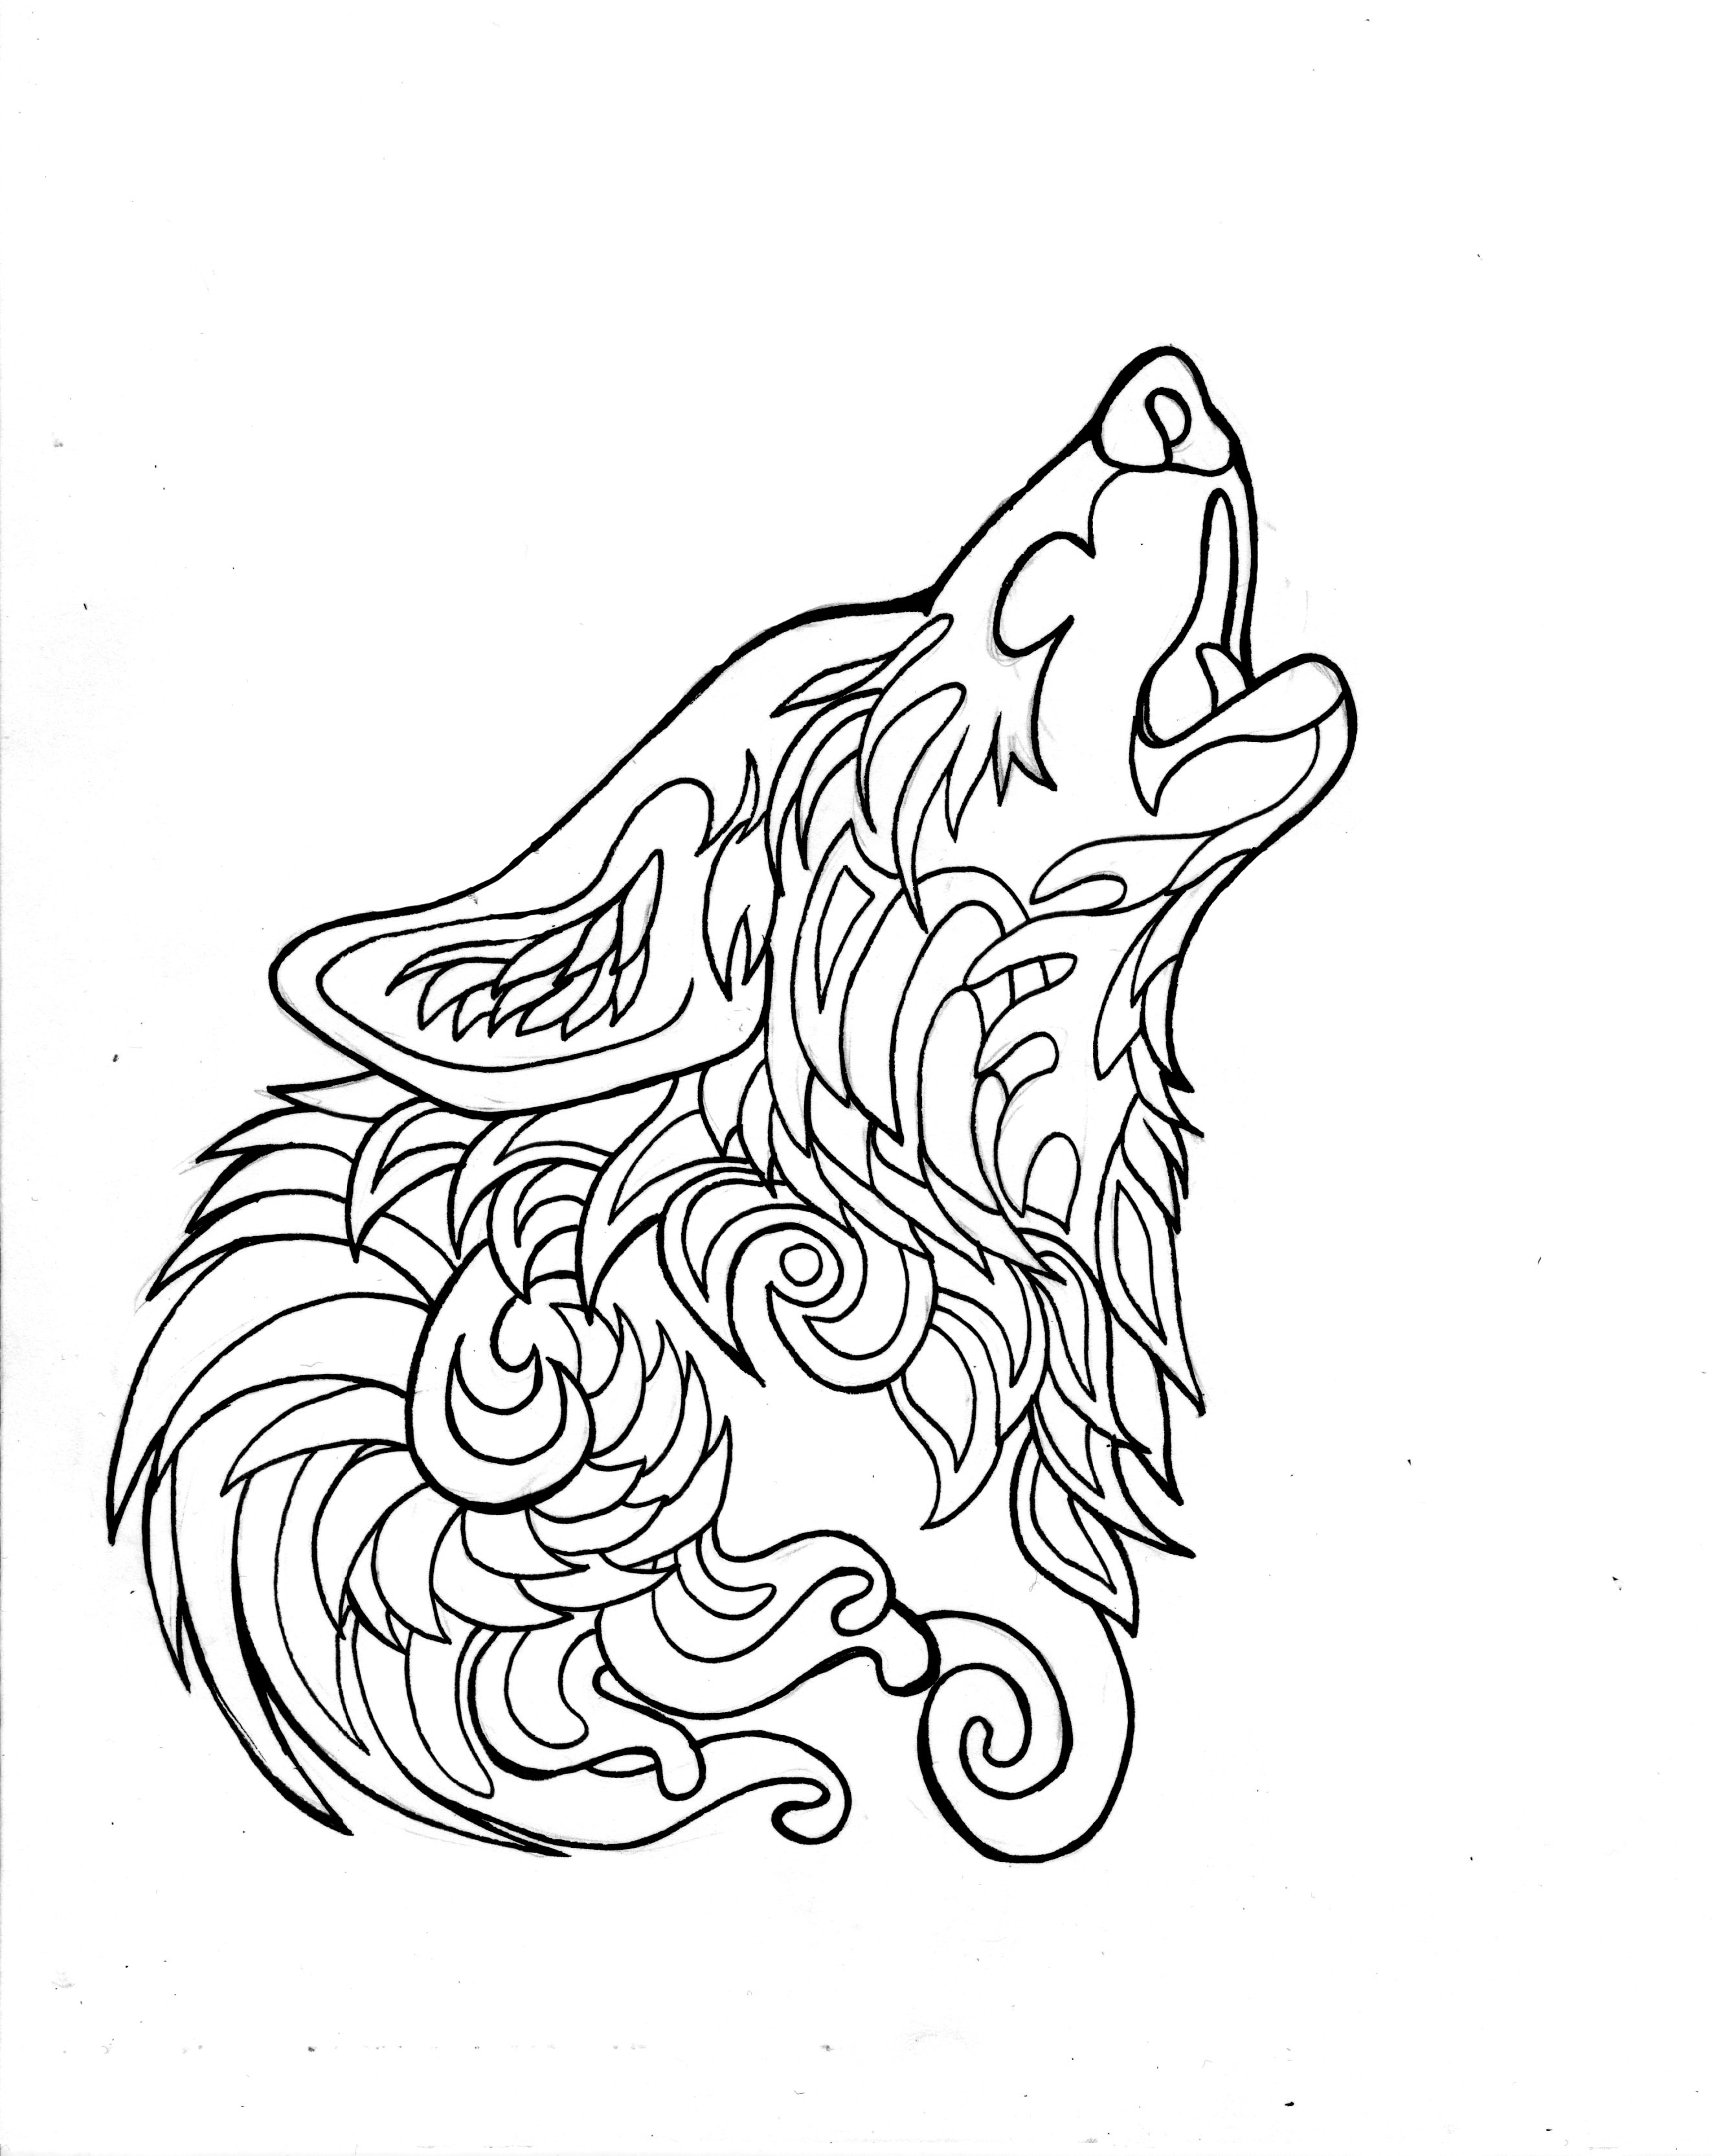 wolf pictures to color and print free wolf coloring pages wolf to pictures color and print